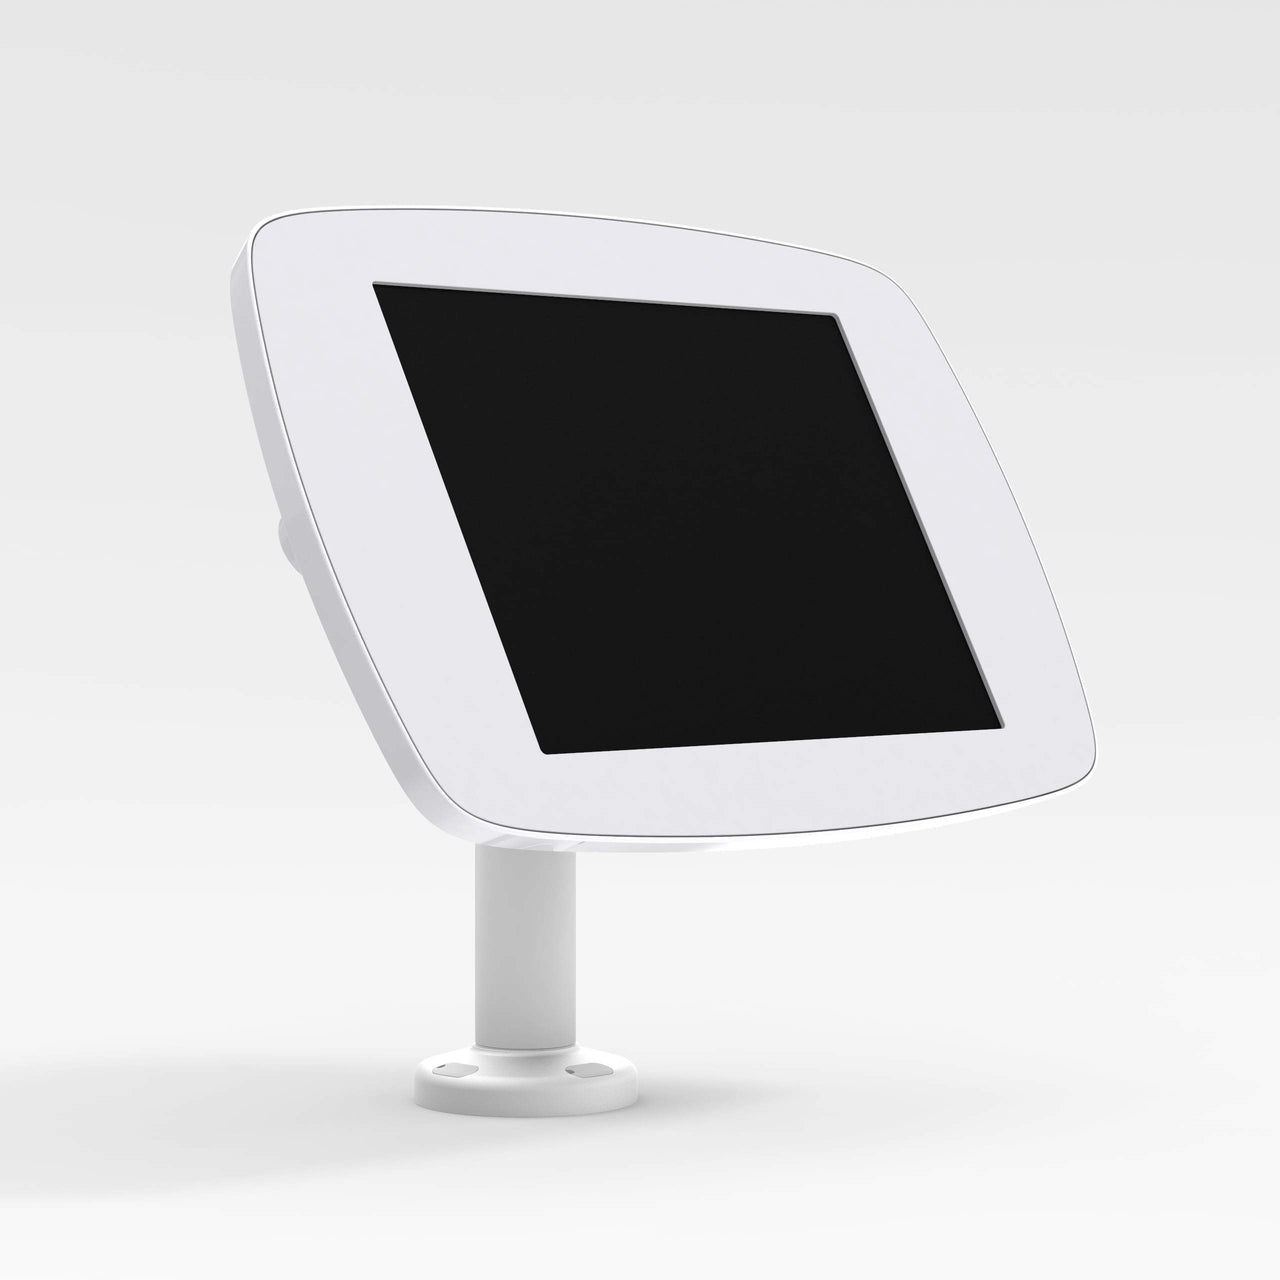 Bouncepad Swivel 60 - A secure tablet & iPad desk mount in white.